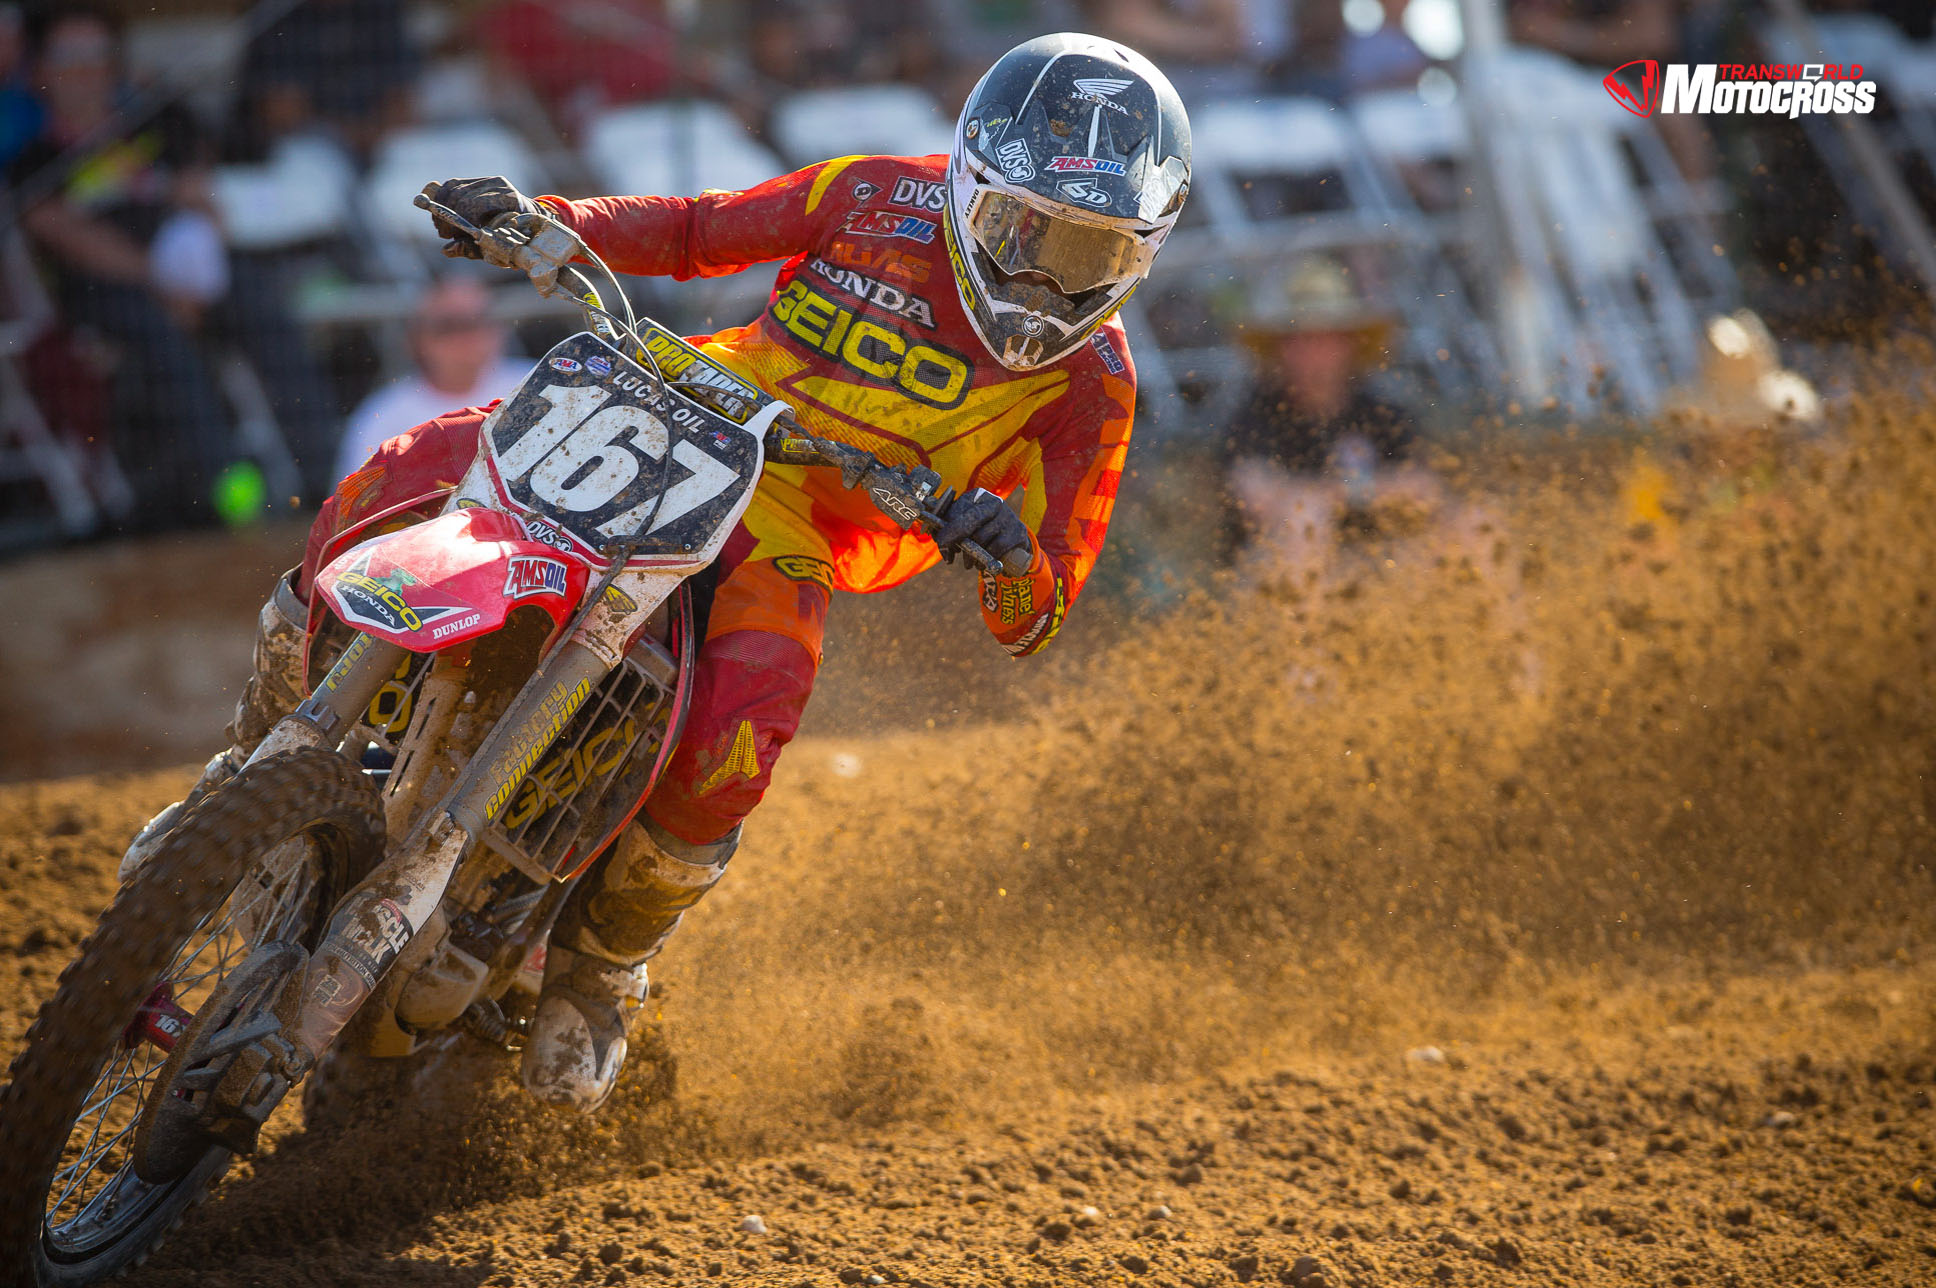 Wallpapers Motocross KTM Wallpaper × Motocross Wallpaper 1936x1288